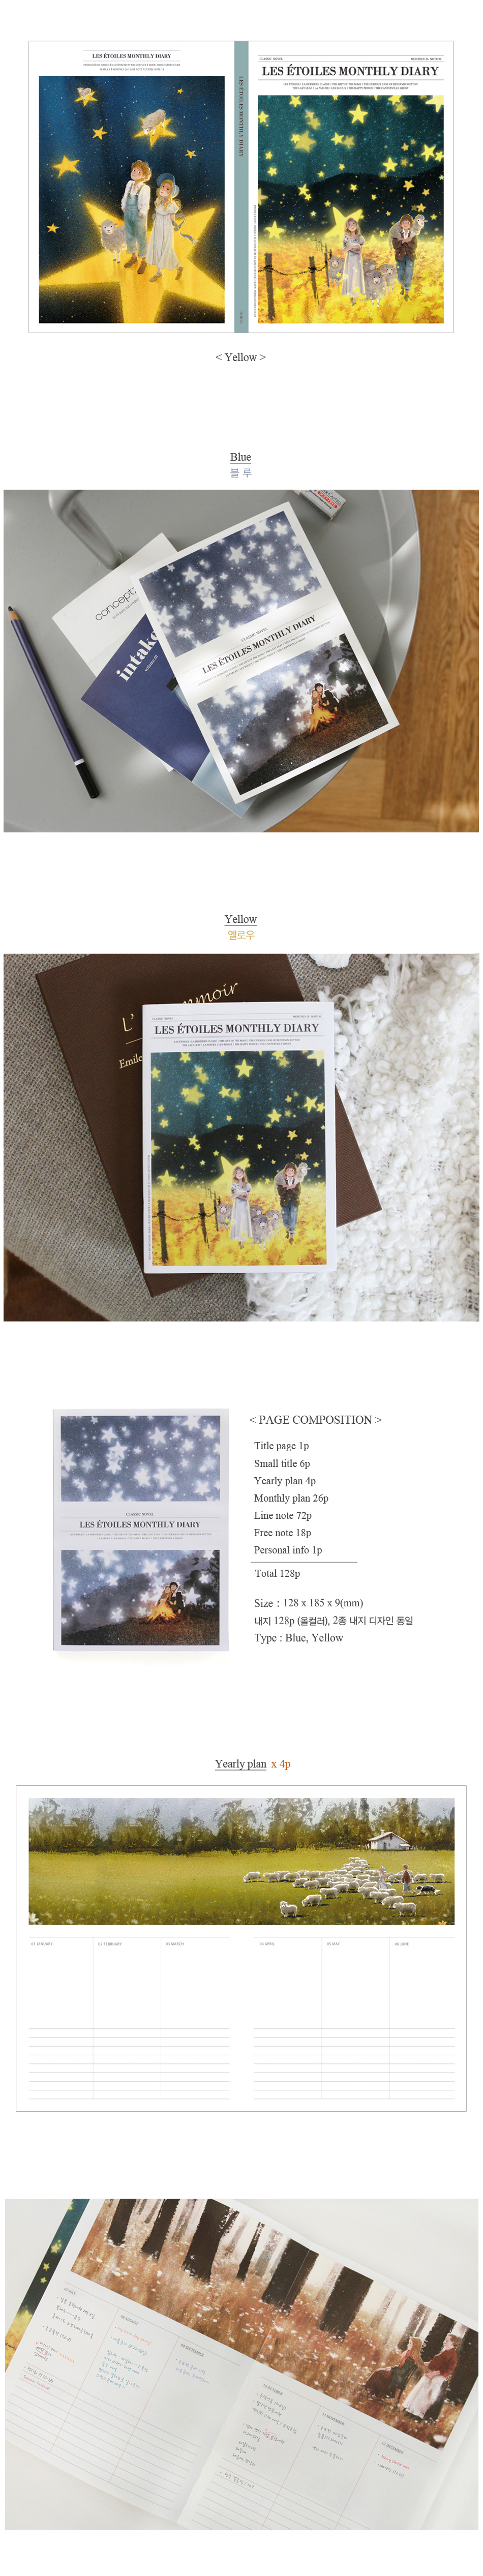 beautiful diary diaries [beautiful diary, beautiful diaries, beautiful stationery]